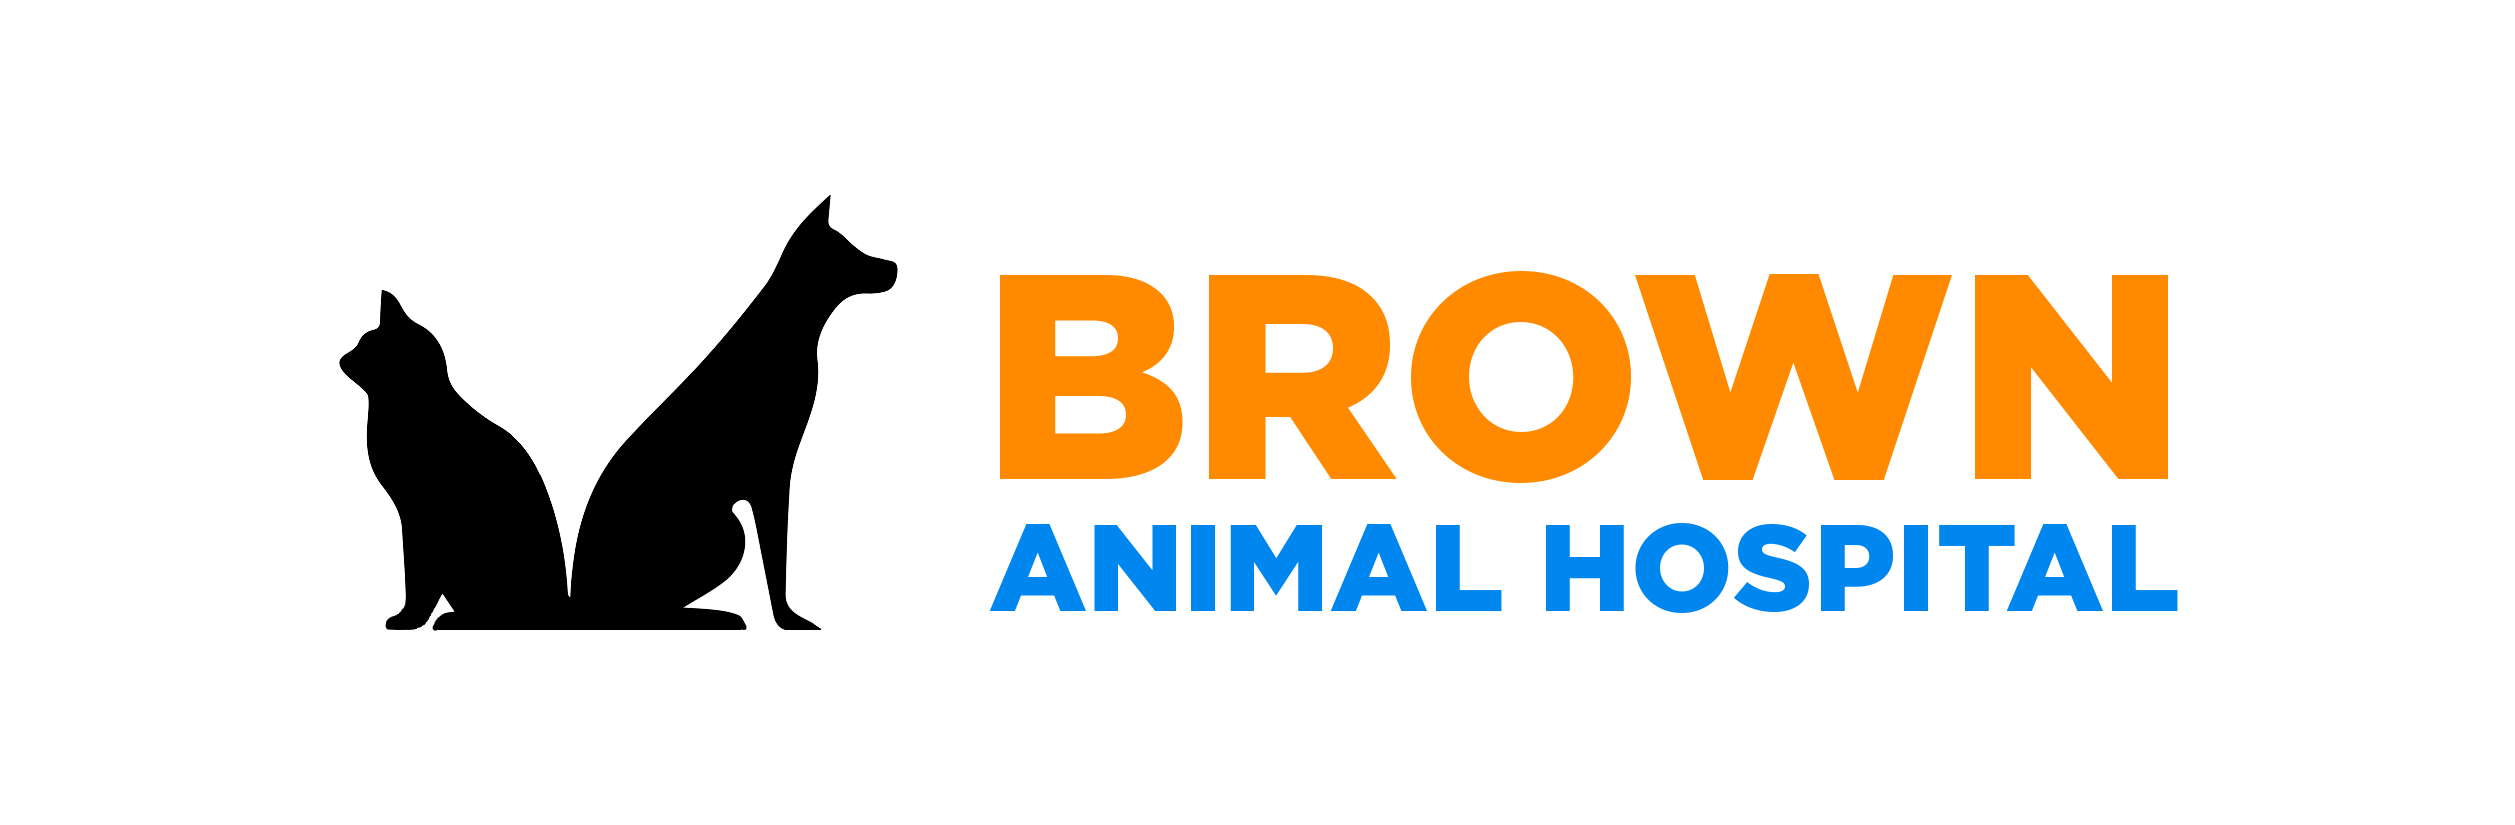 Brown Animal Hospital